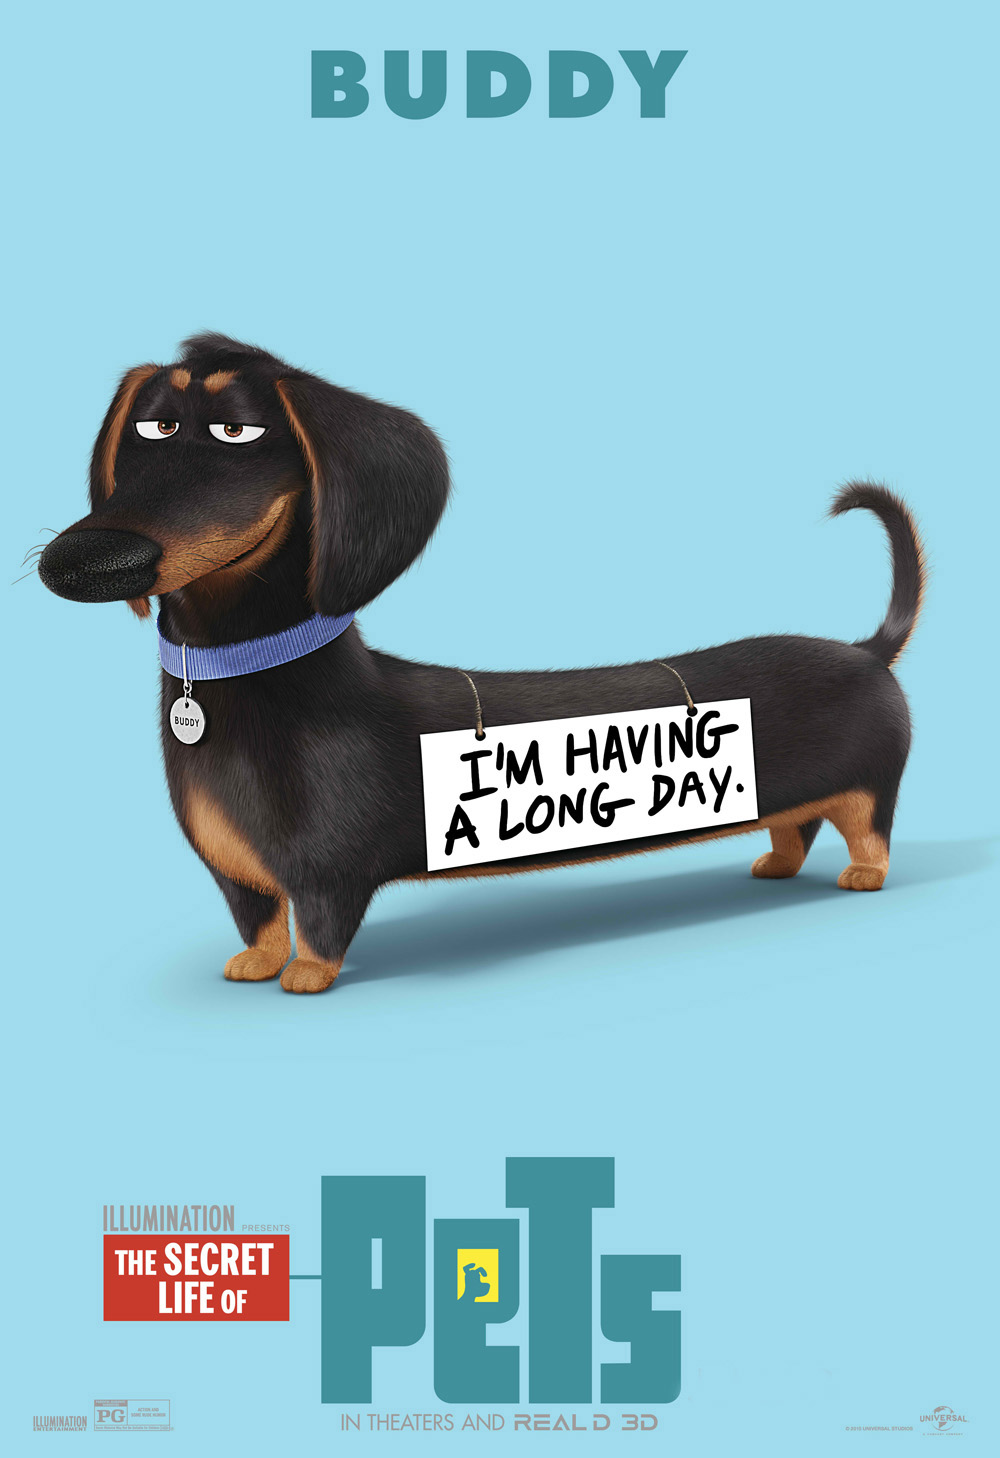 Secret Life Of Pets Characters Take A Bow In Own Posters Bnlmag